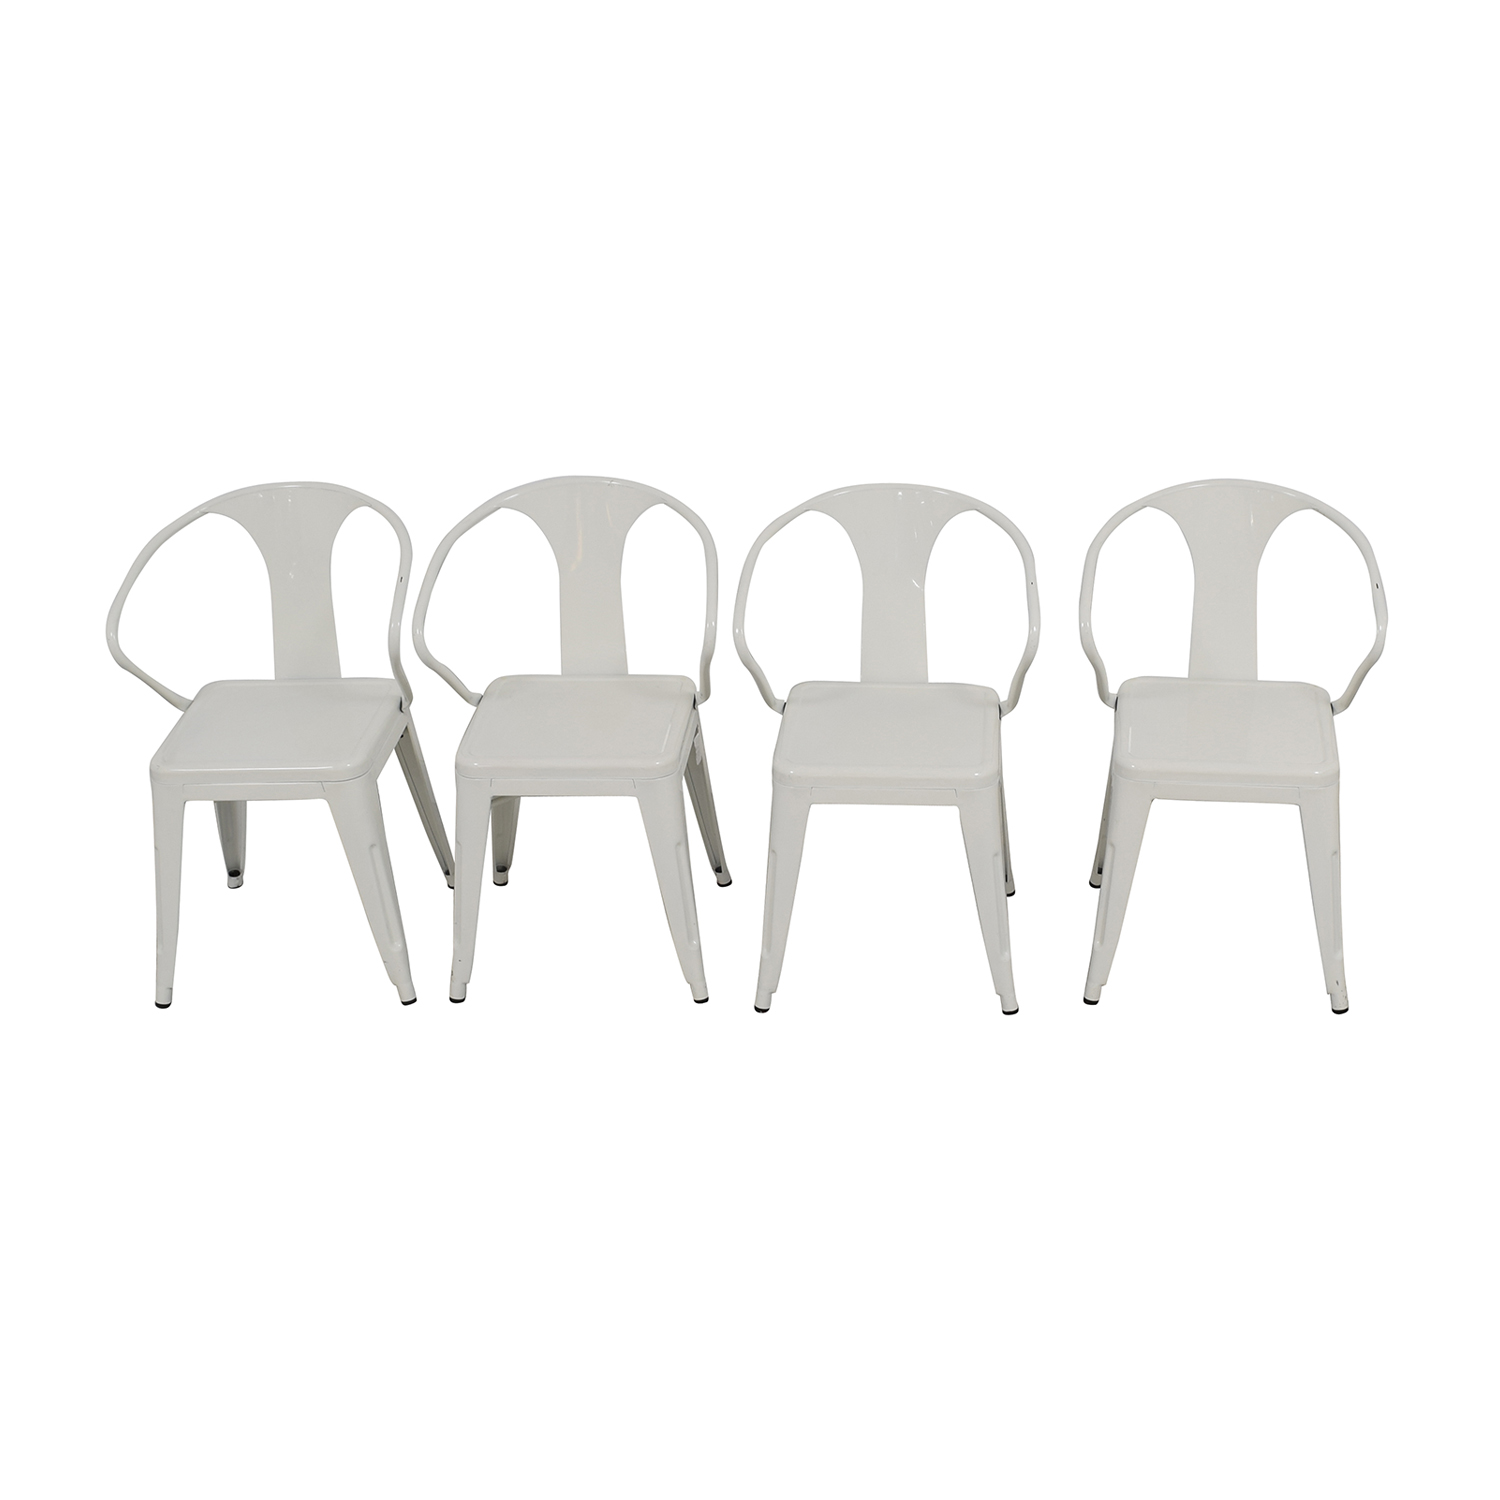 ... Overstock Overstock White European Chairs for sale ...  sc 1 st  Furnishare & 74% OFF - Overstock Overstock White European Chairs / Chairs